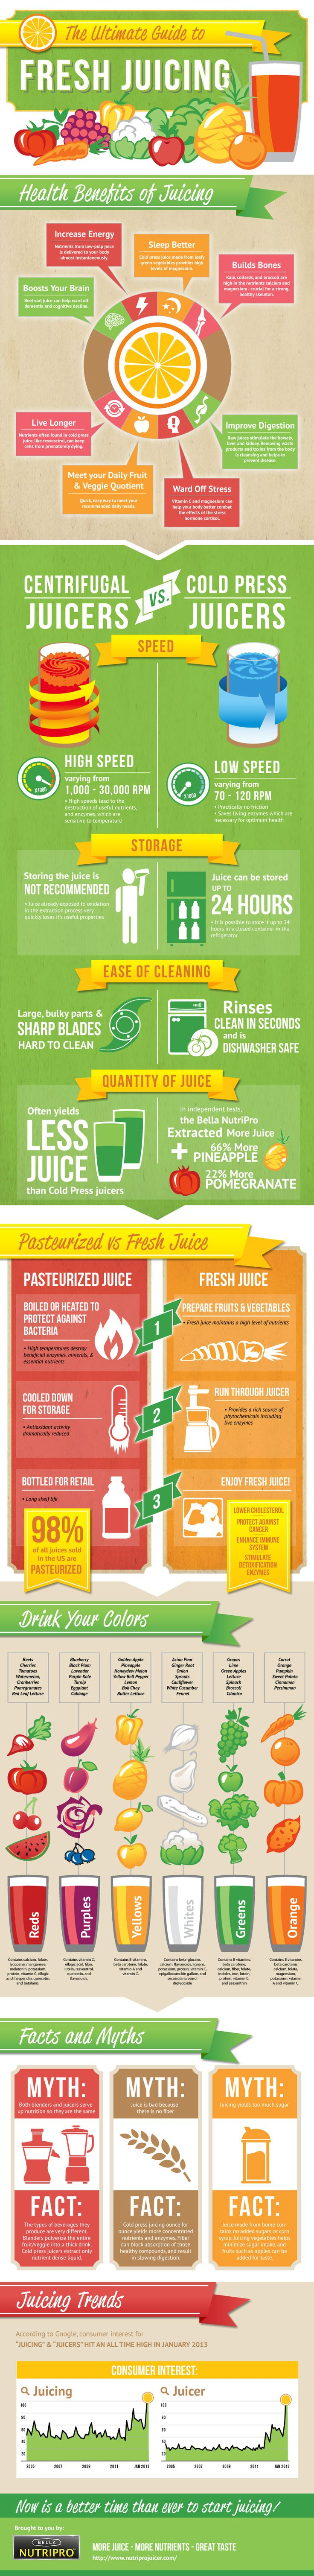 juicing information Add juicing benefits to natural, healthy weight loss juicing for weight loss has such a wealth of body benefits that it is fast replacing water detox regimens.